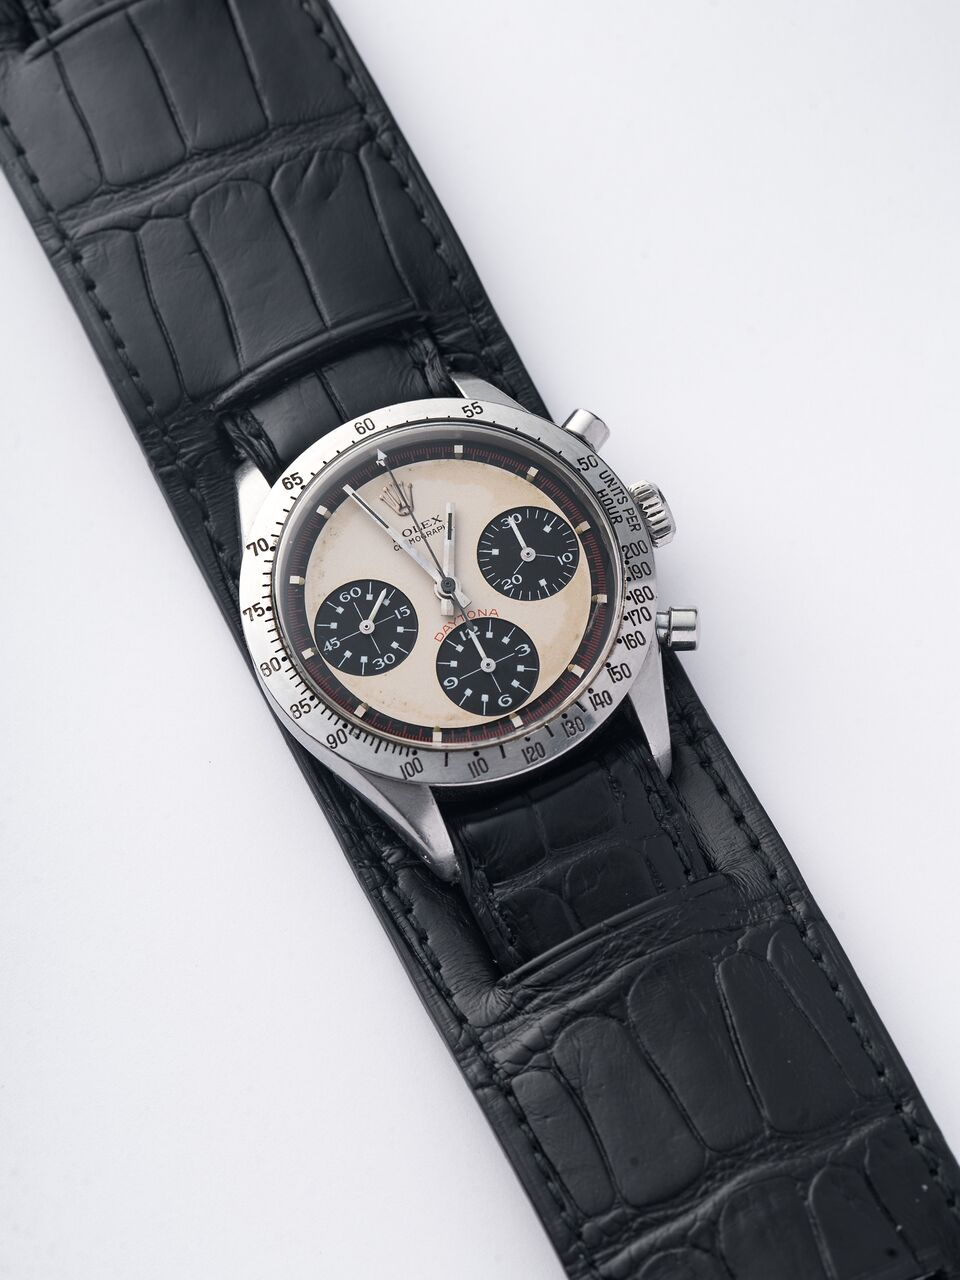 Paul Newman S Personal Rolex Cosmograph Daytona Coming Up For Auction